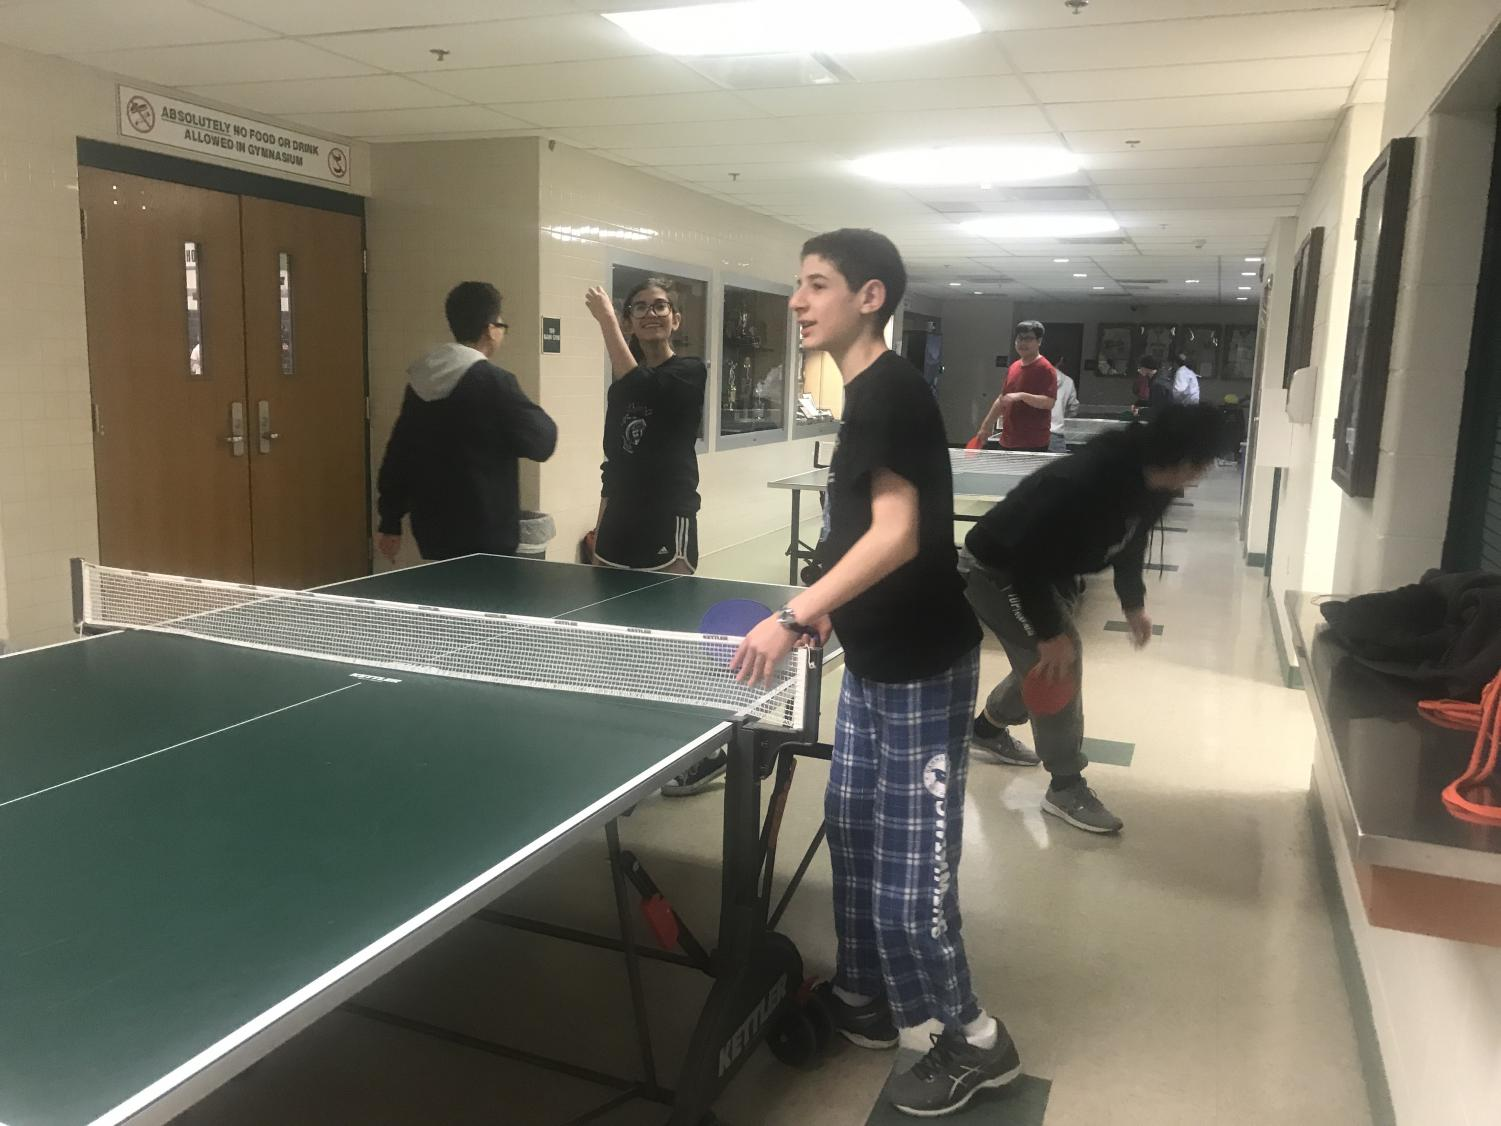 Ping-Pong games with Mr. Choi. Photo by Sam Falb.